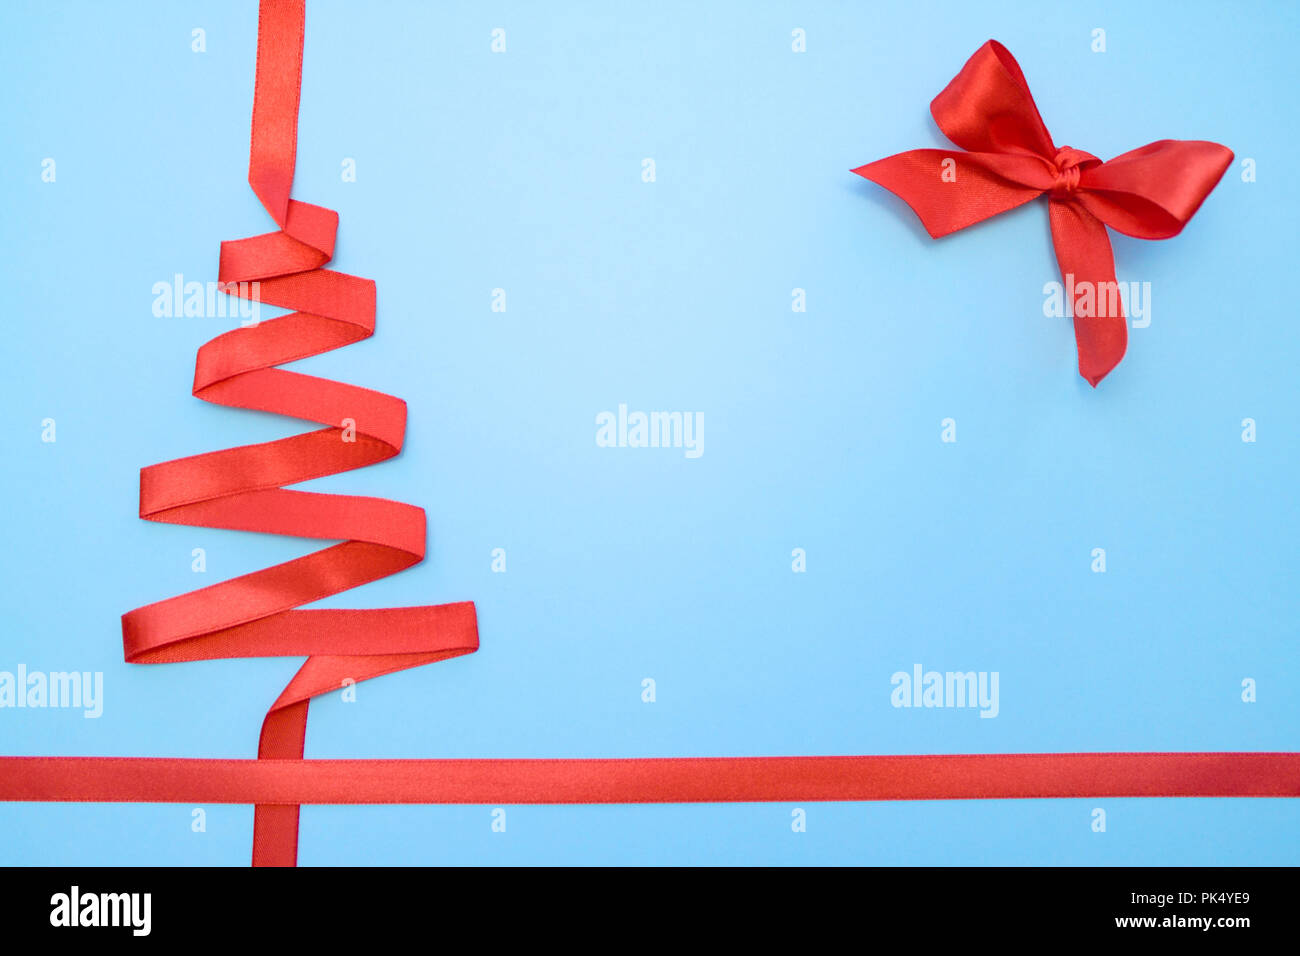 holidays winter and celebration concept christmas and new year tree made from red ribbon on blue background free space for text